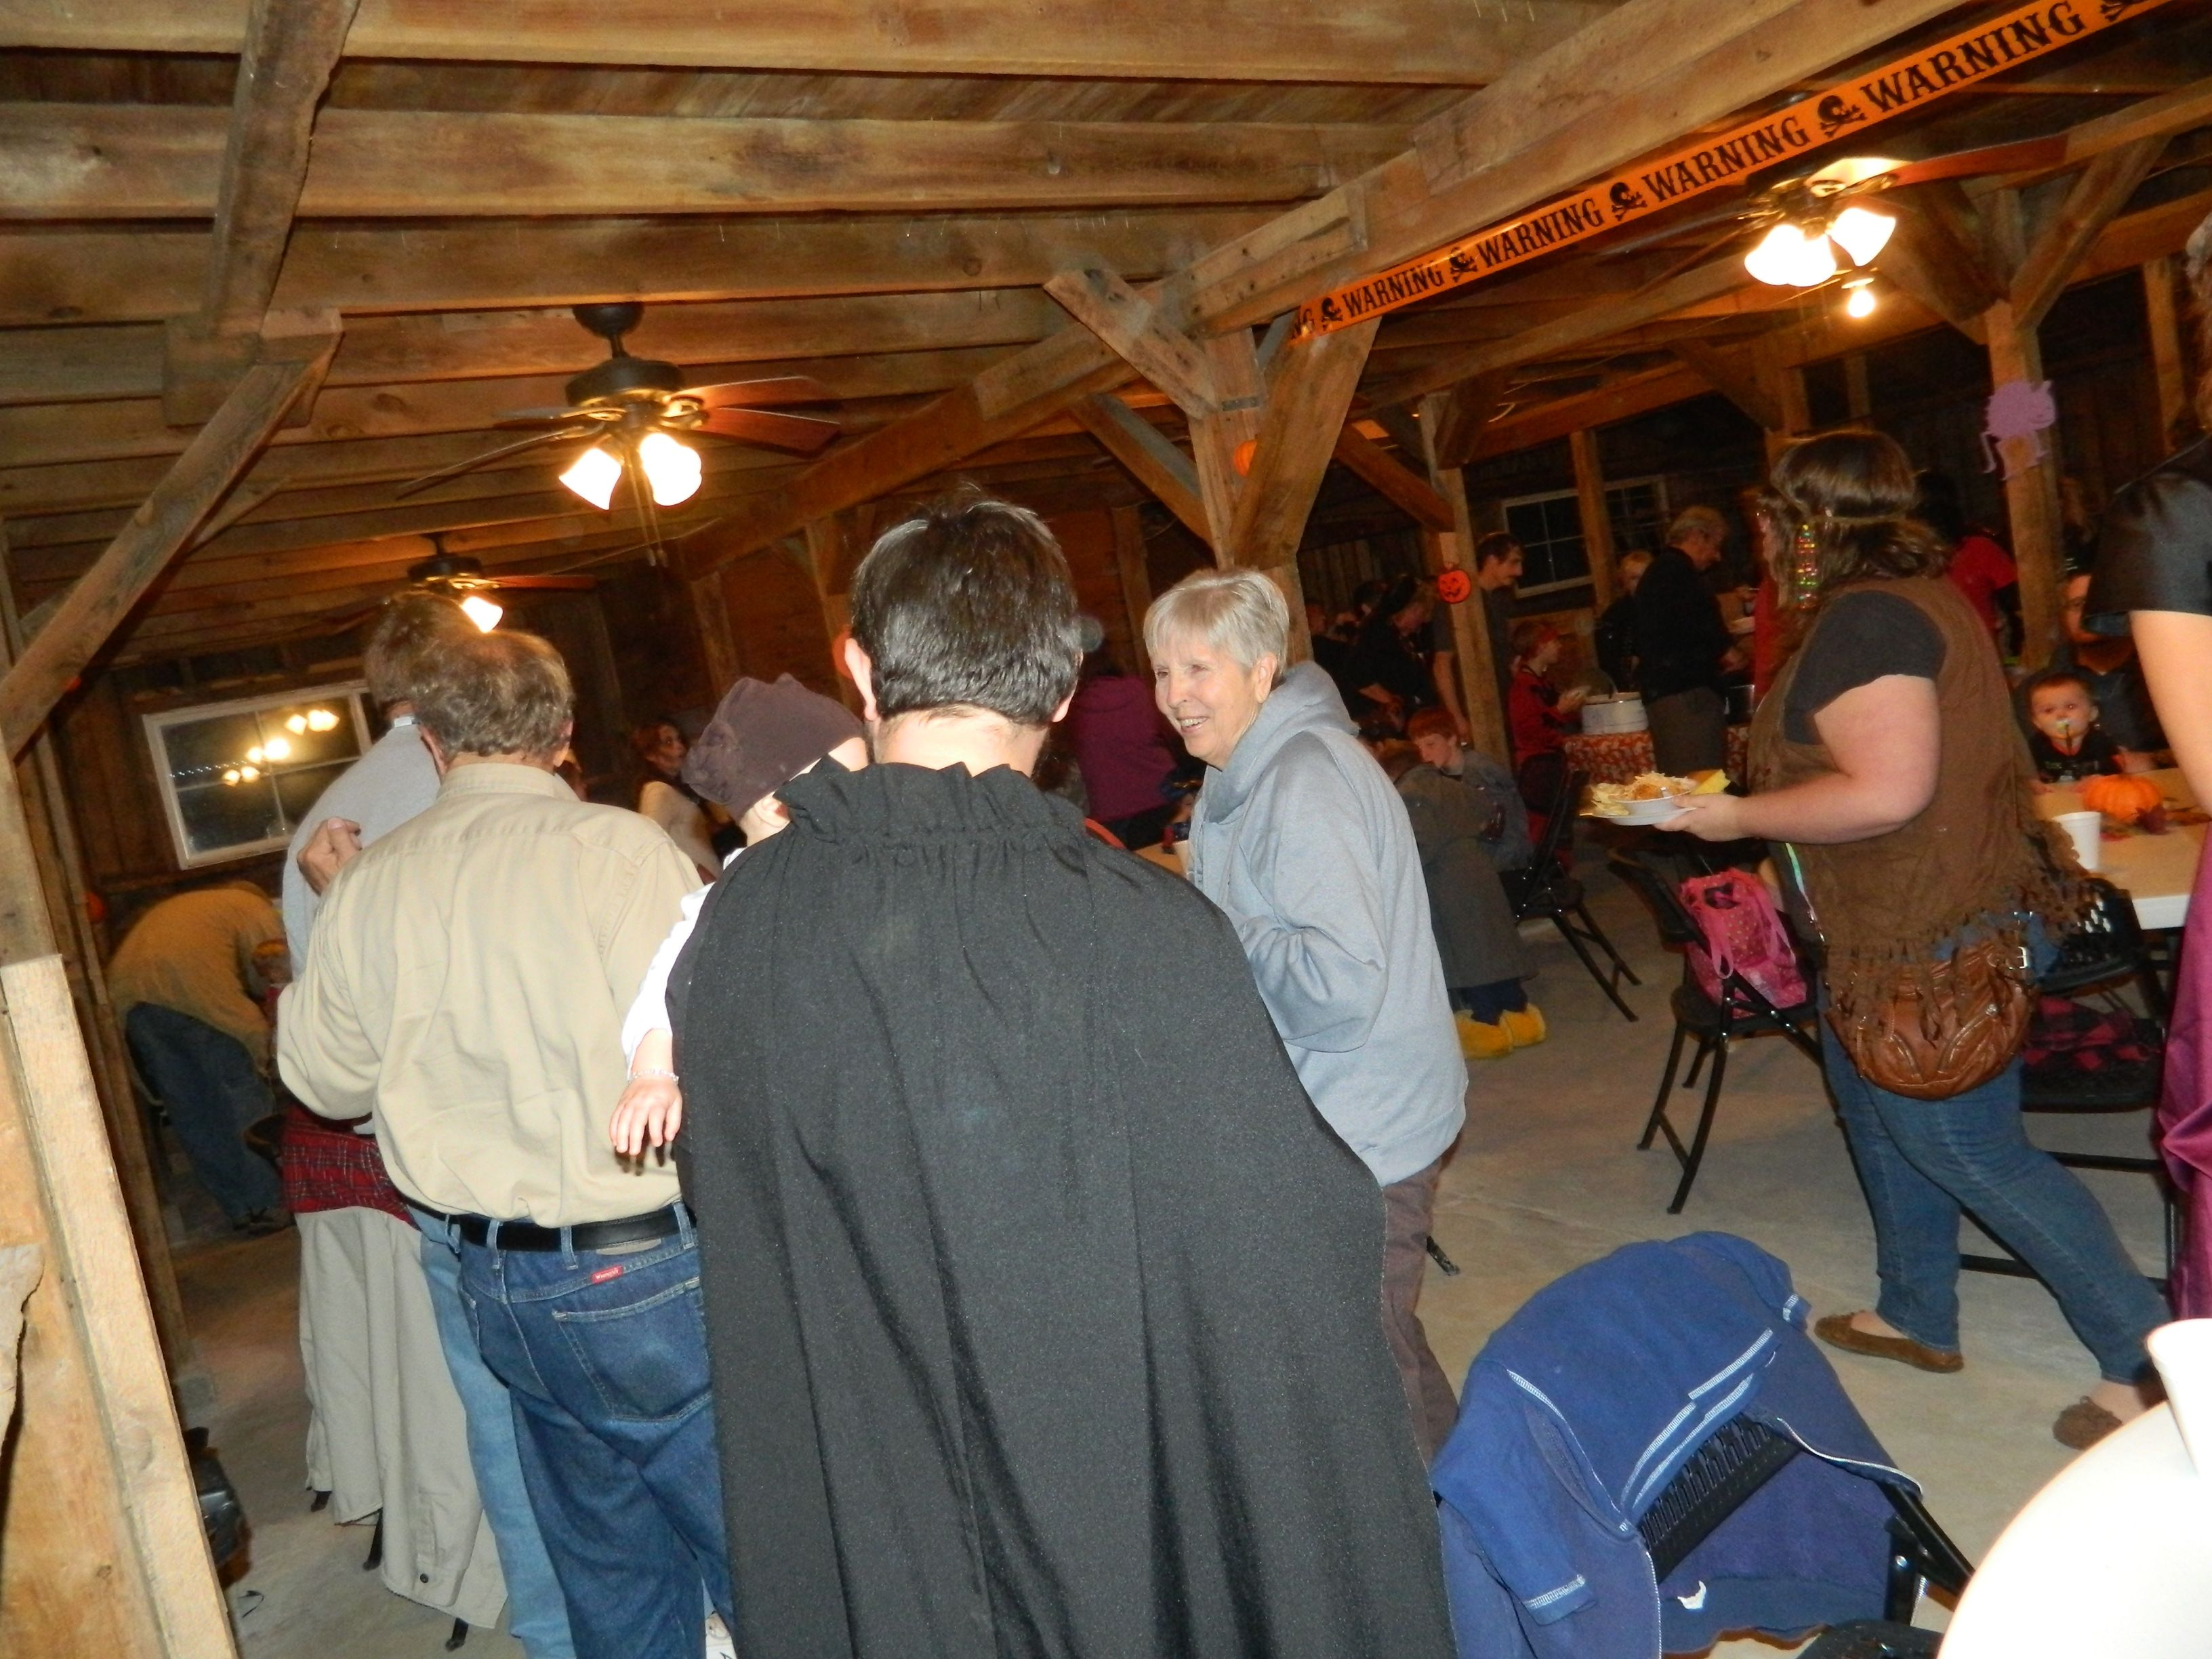 Church group does Halloween party inside the Wedding Barn/Events ...